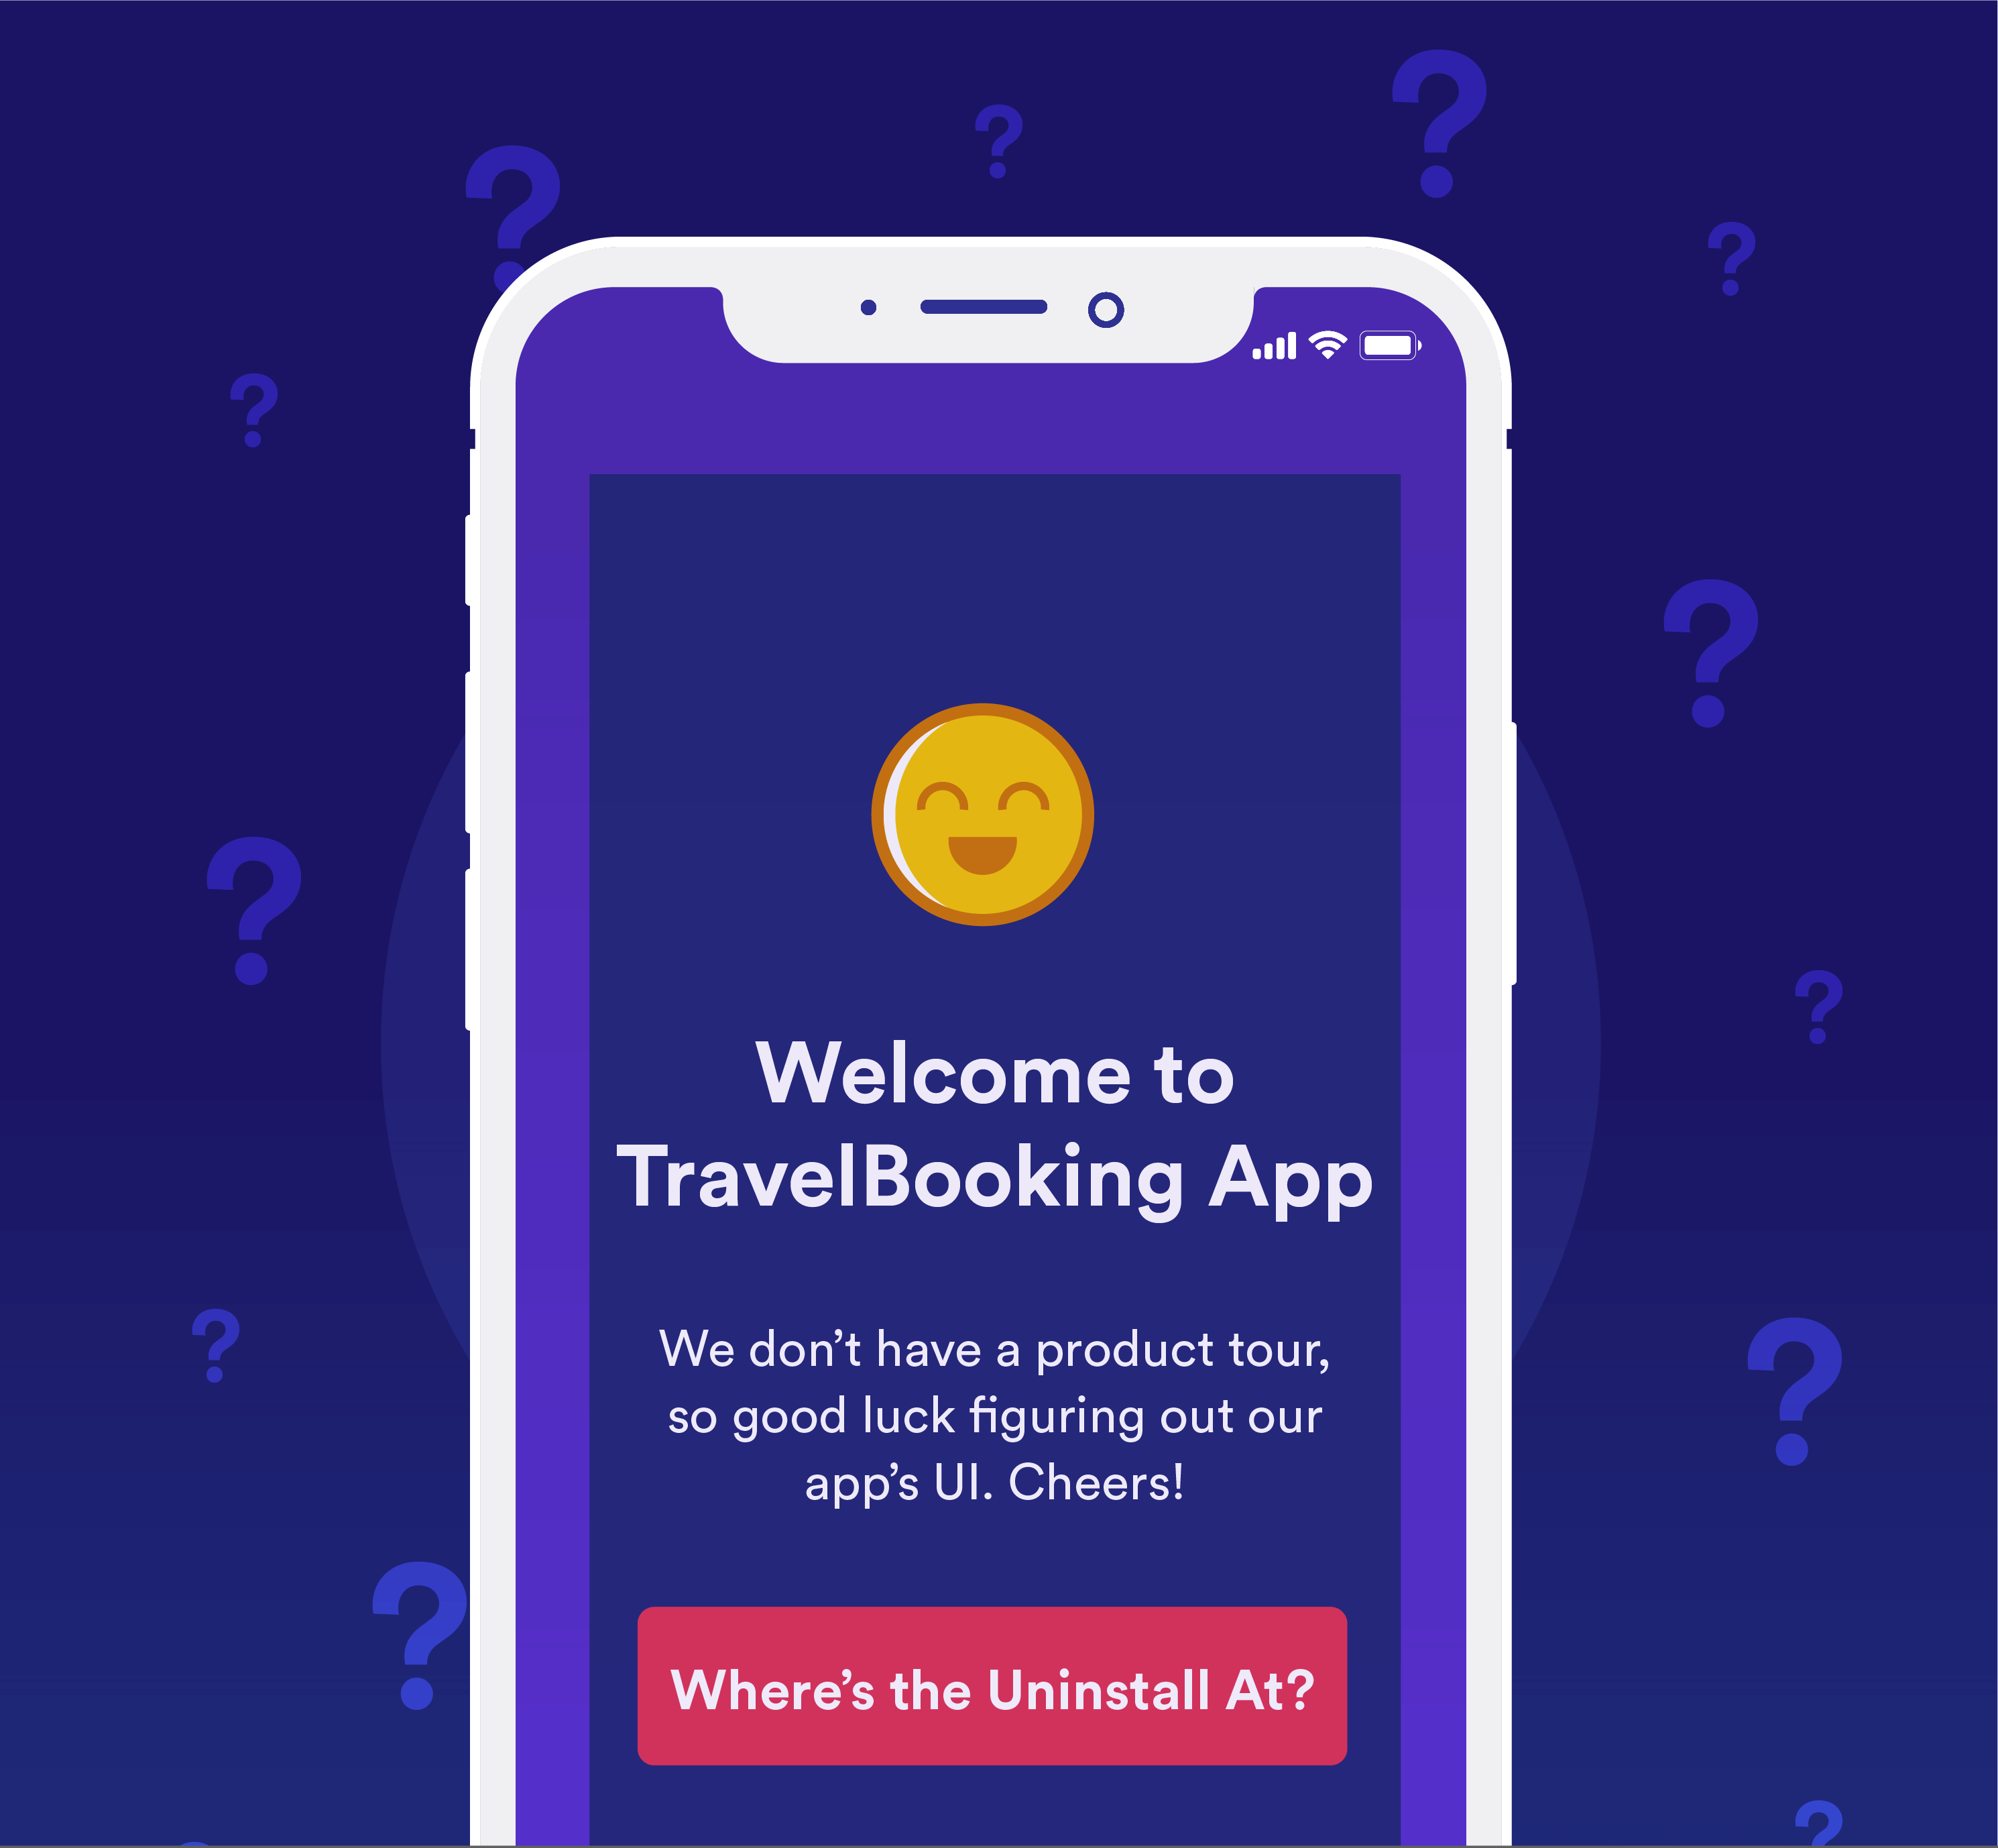 Welcome to TravelBooking App. We don't have a product tour, so good luck figuring out our app's UI